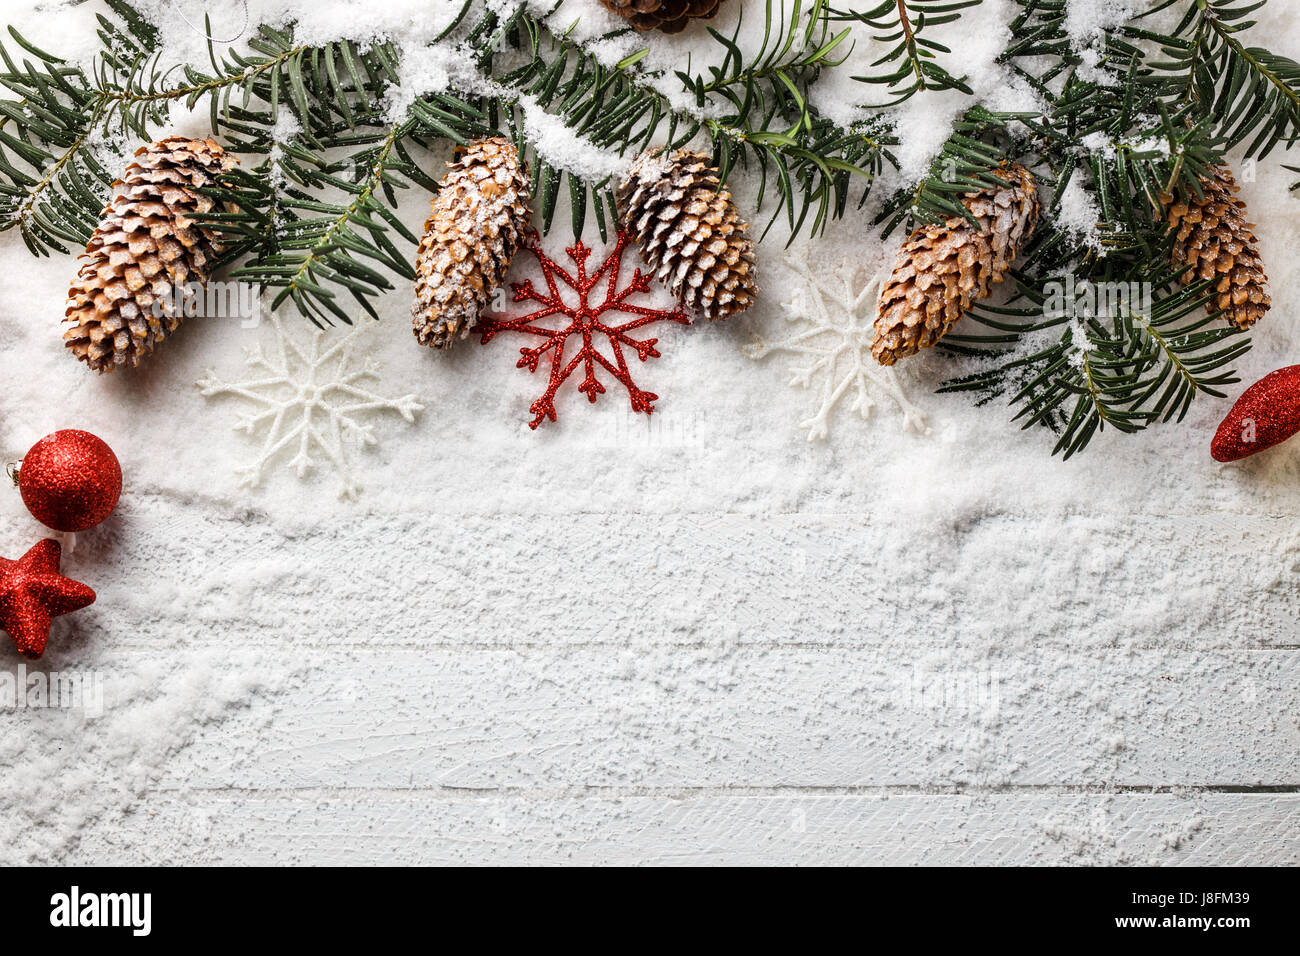 snowy christmas background with fir branch and pine cones J8FM39